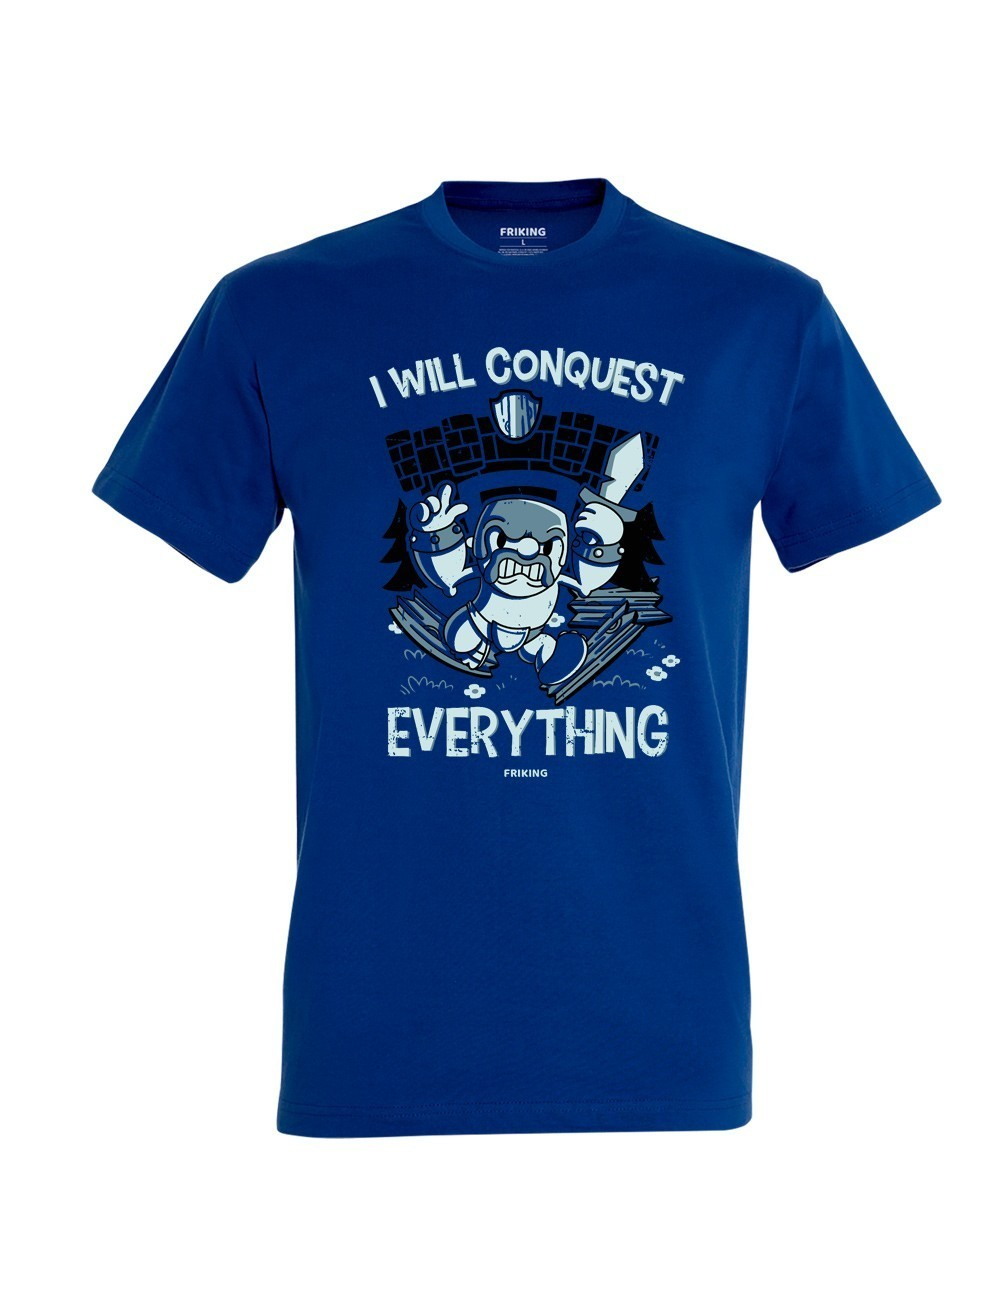 I Will Conquest Everything